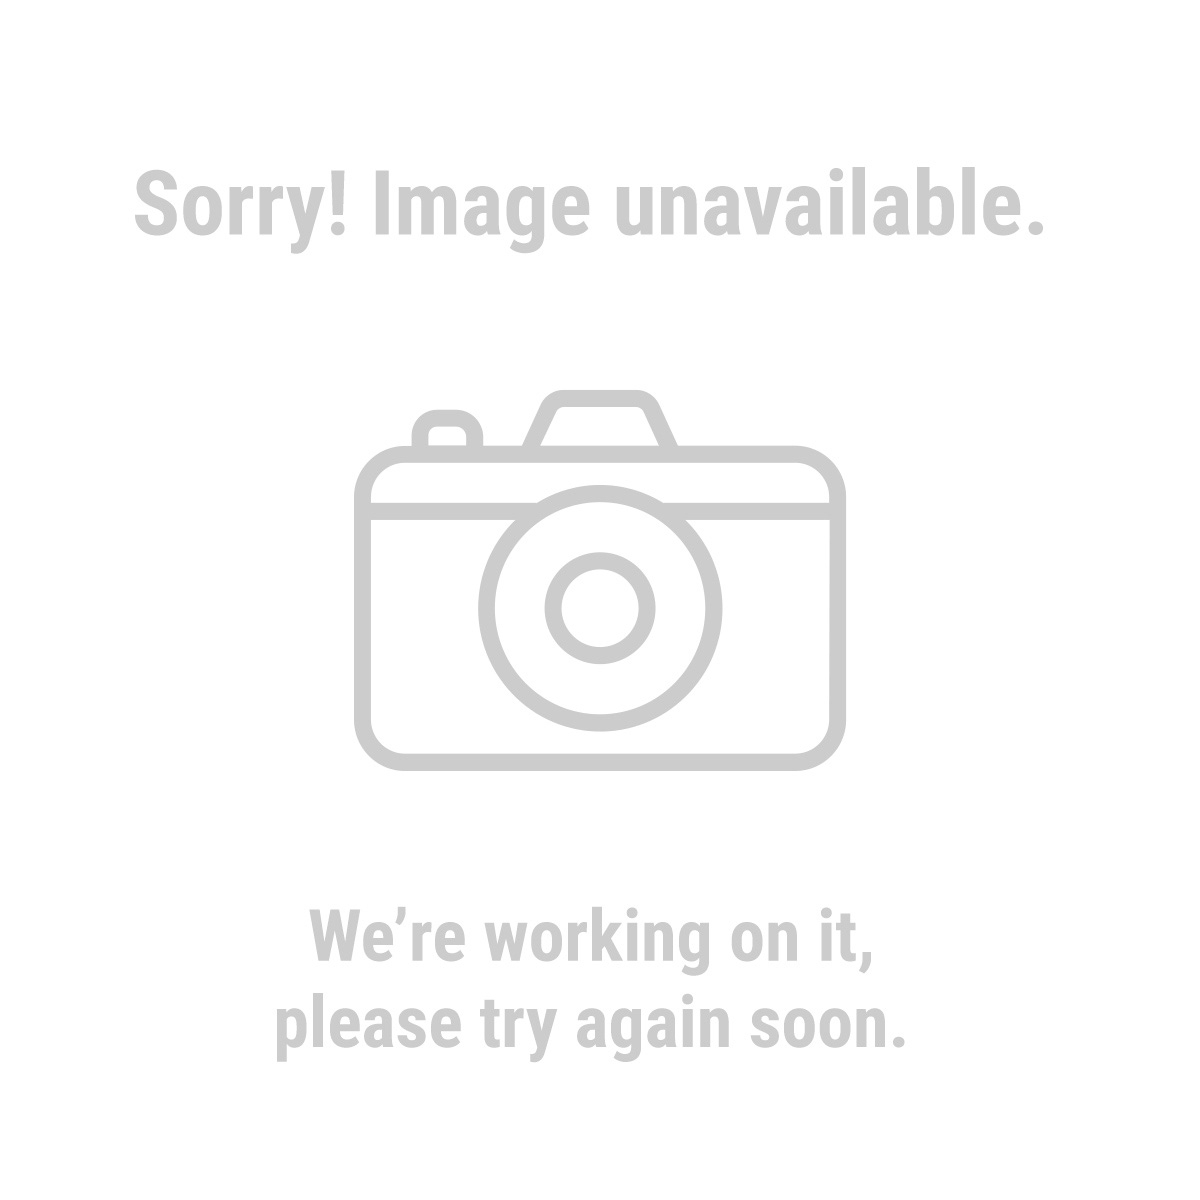 Western Safety 39664 Welding Gloves